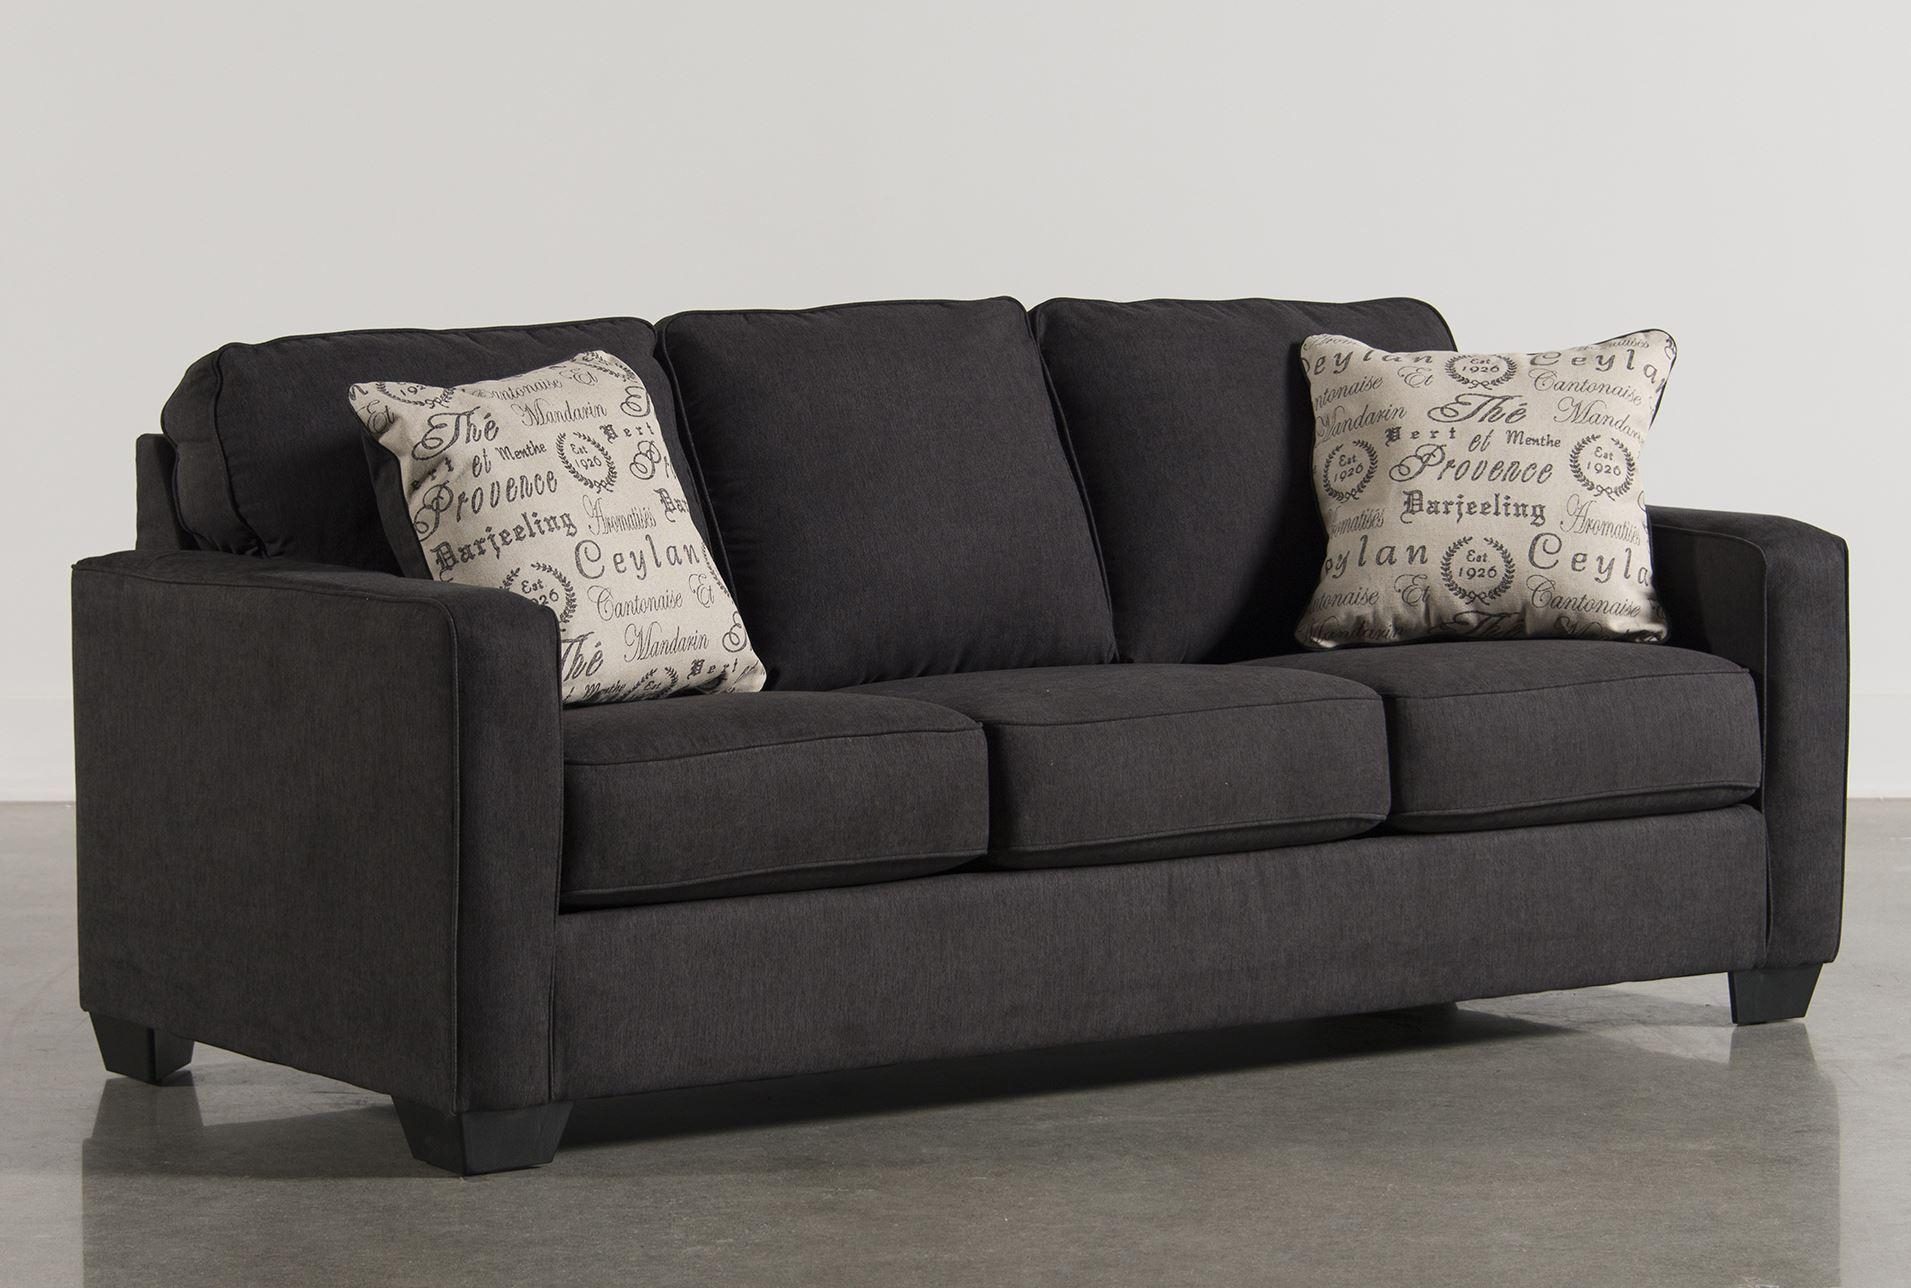 Sleeper Sofa Living Spaces – Ansugallery In Pier One Sleeper Sofas (Image 19 of 20)